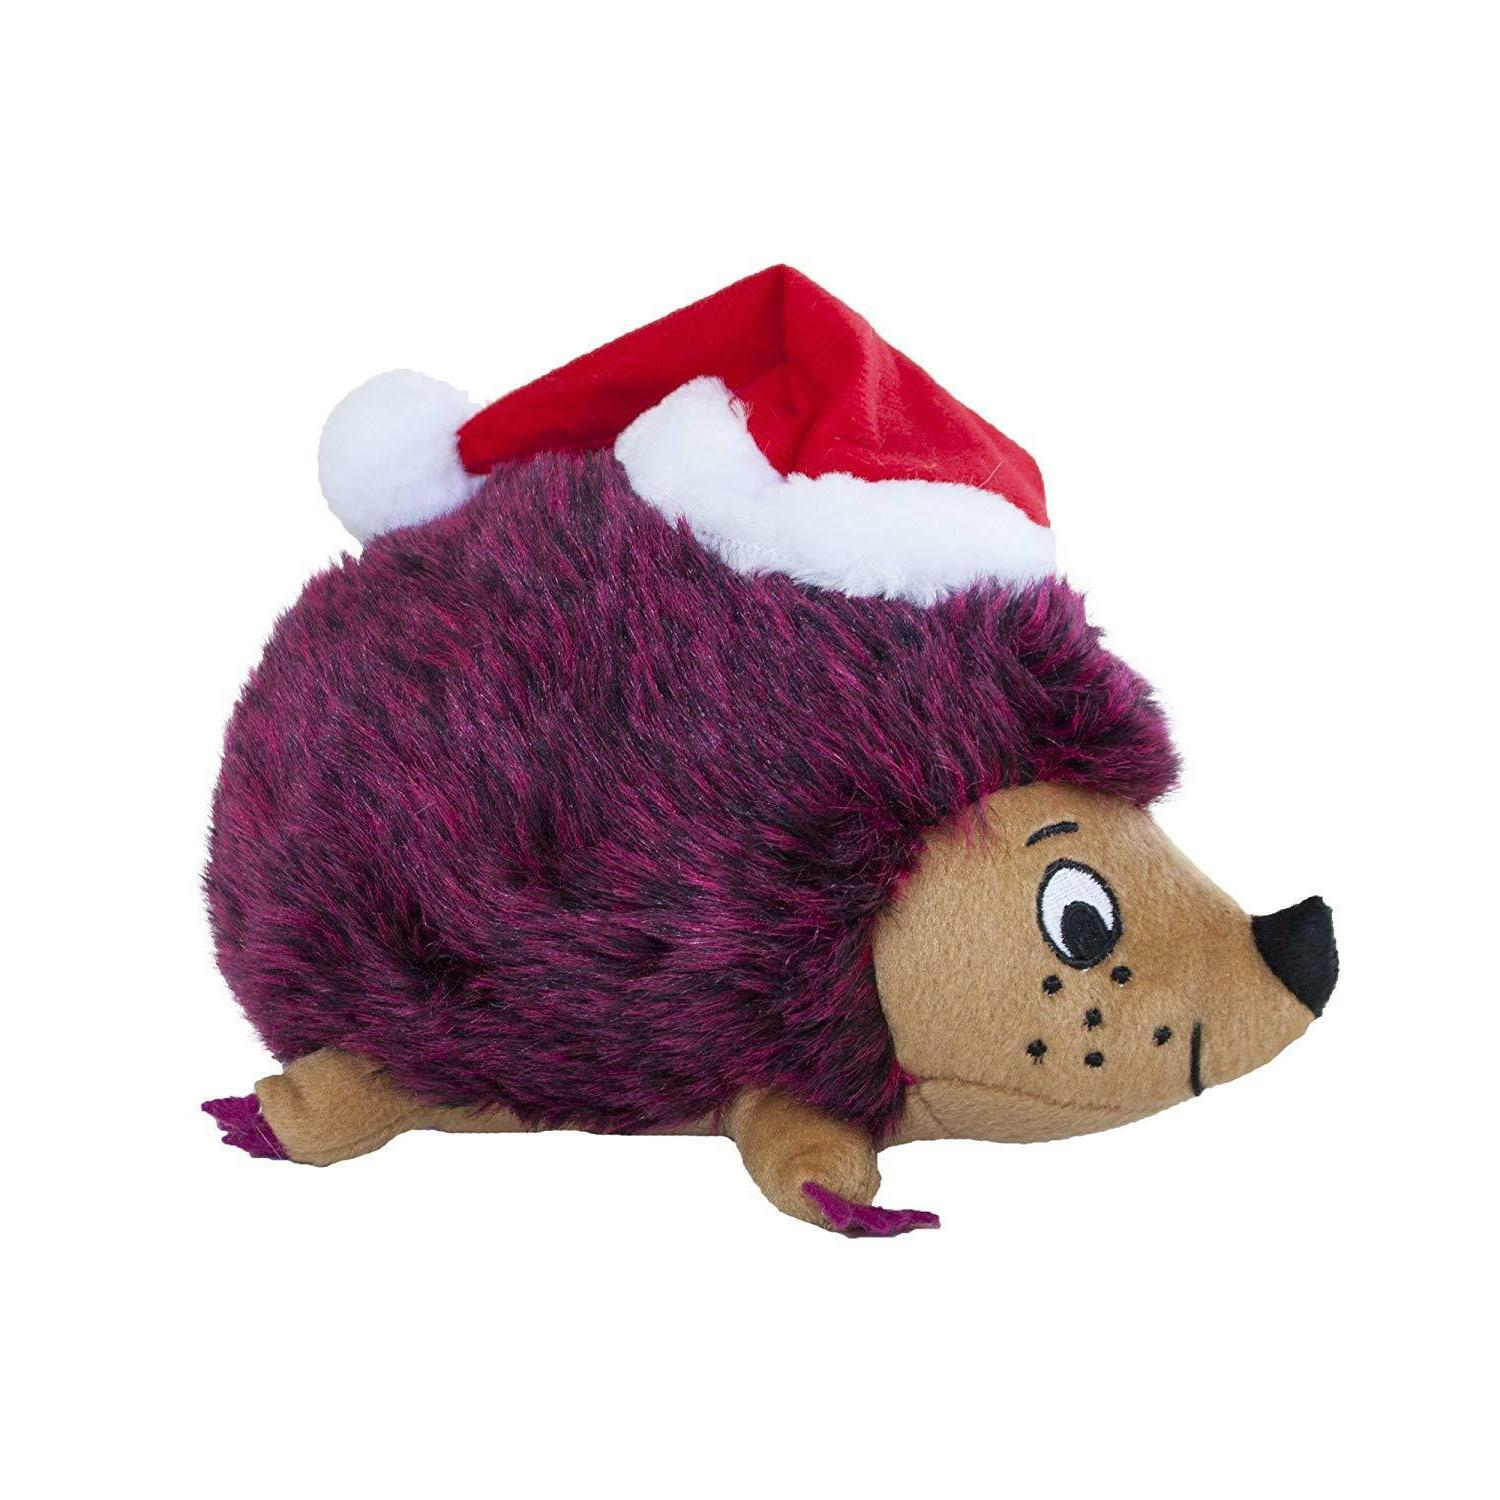 Dog Santa Hedgehog Outward Holiday Durable